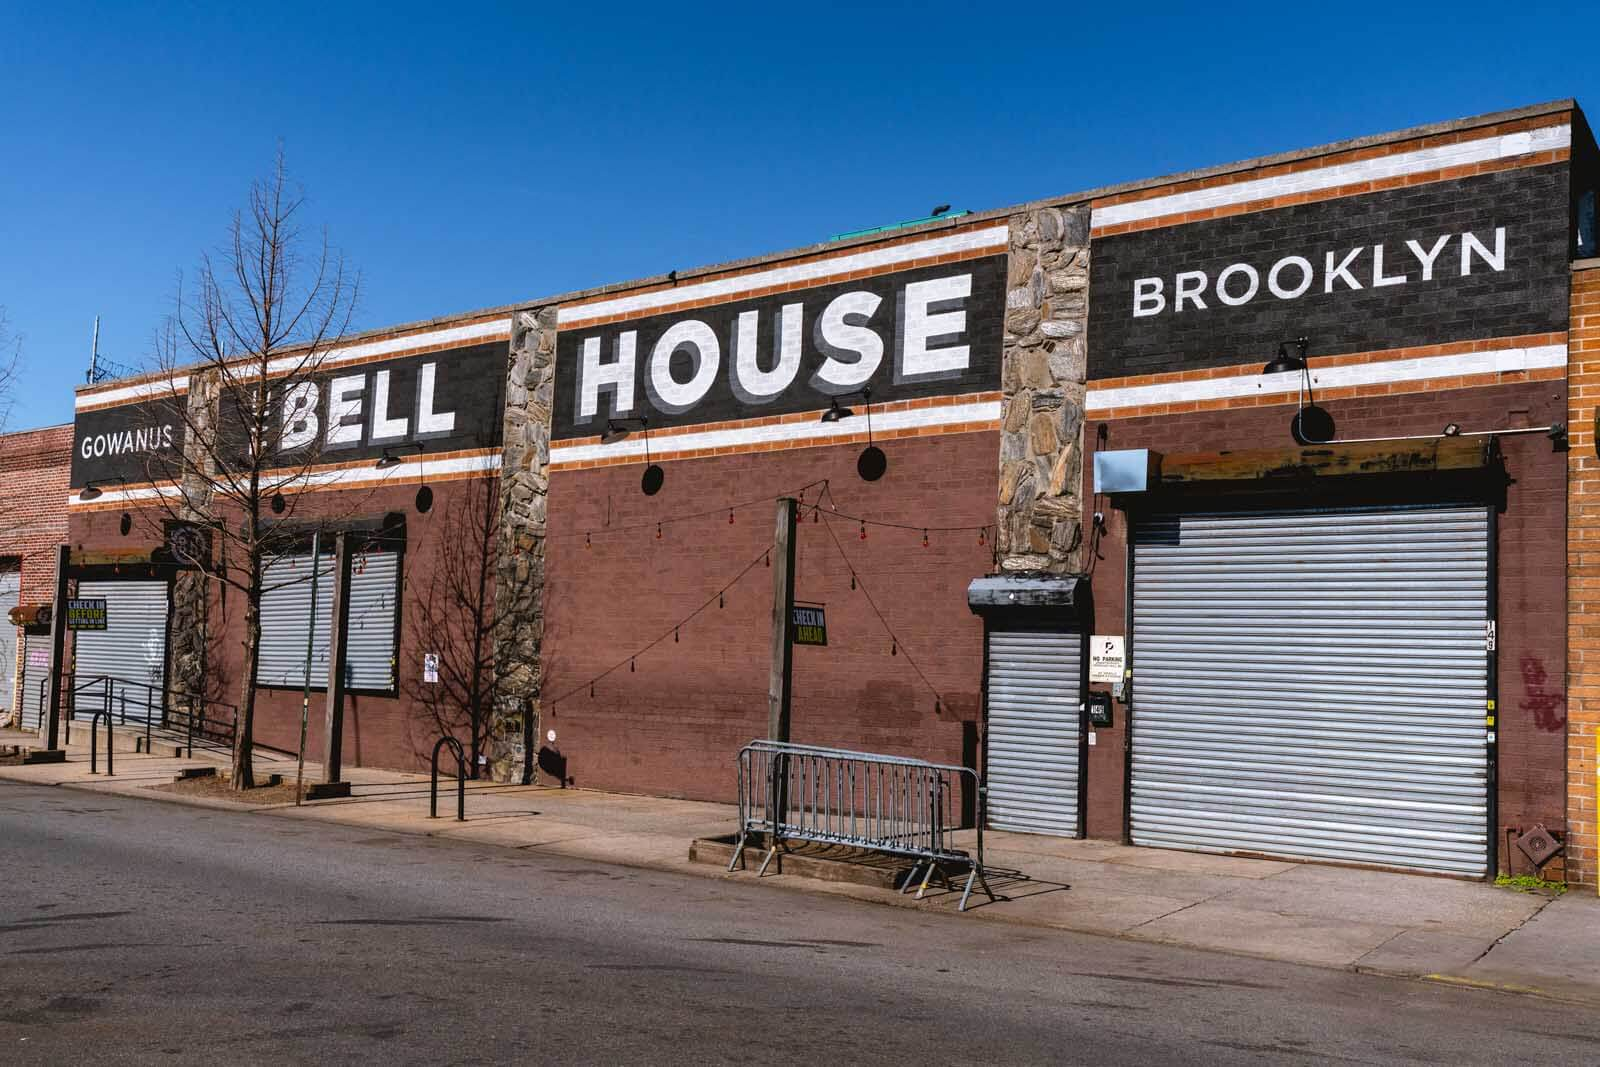 The Bell House in Gowanus Brooklyn